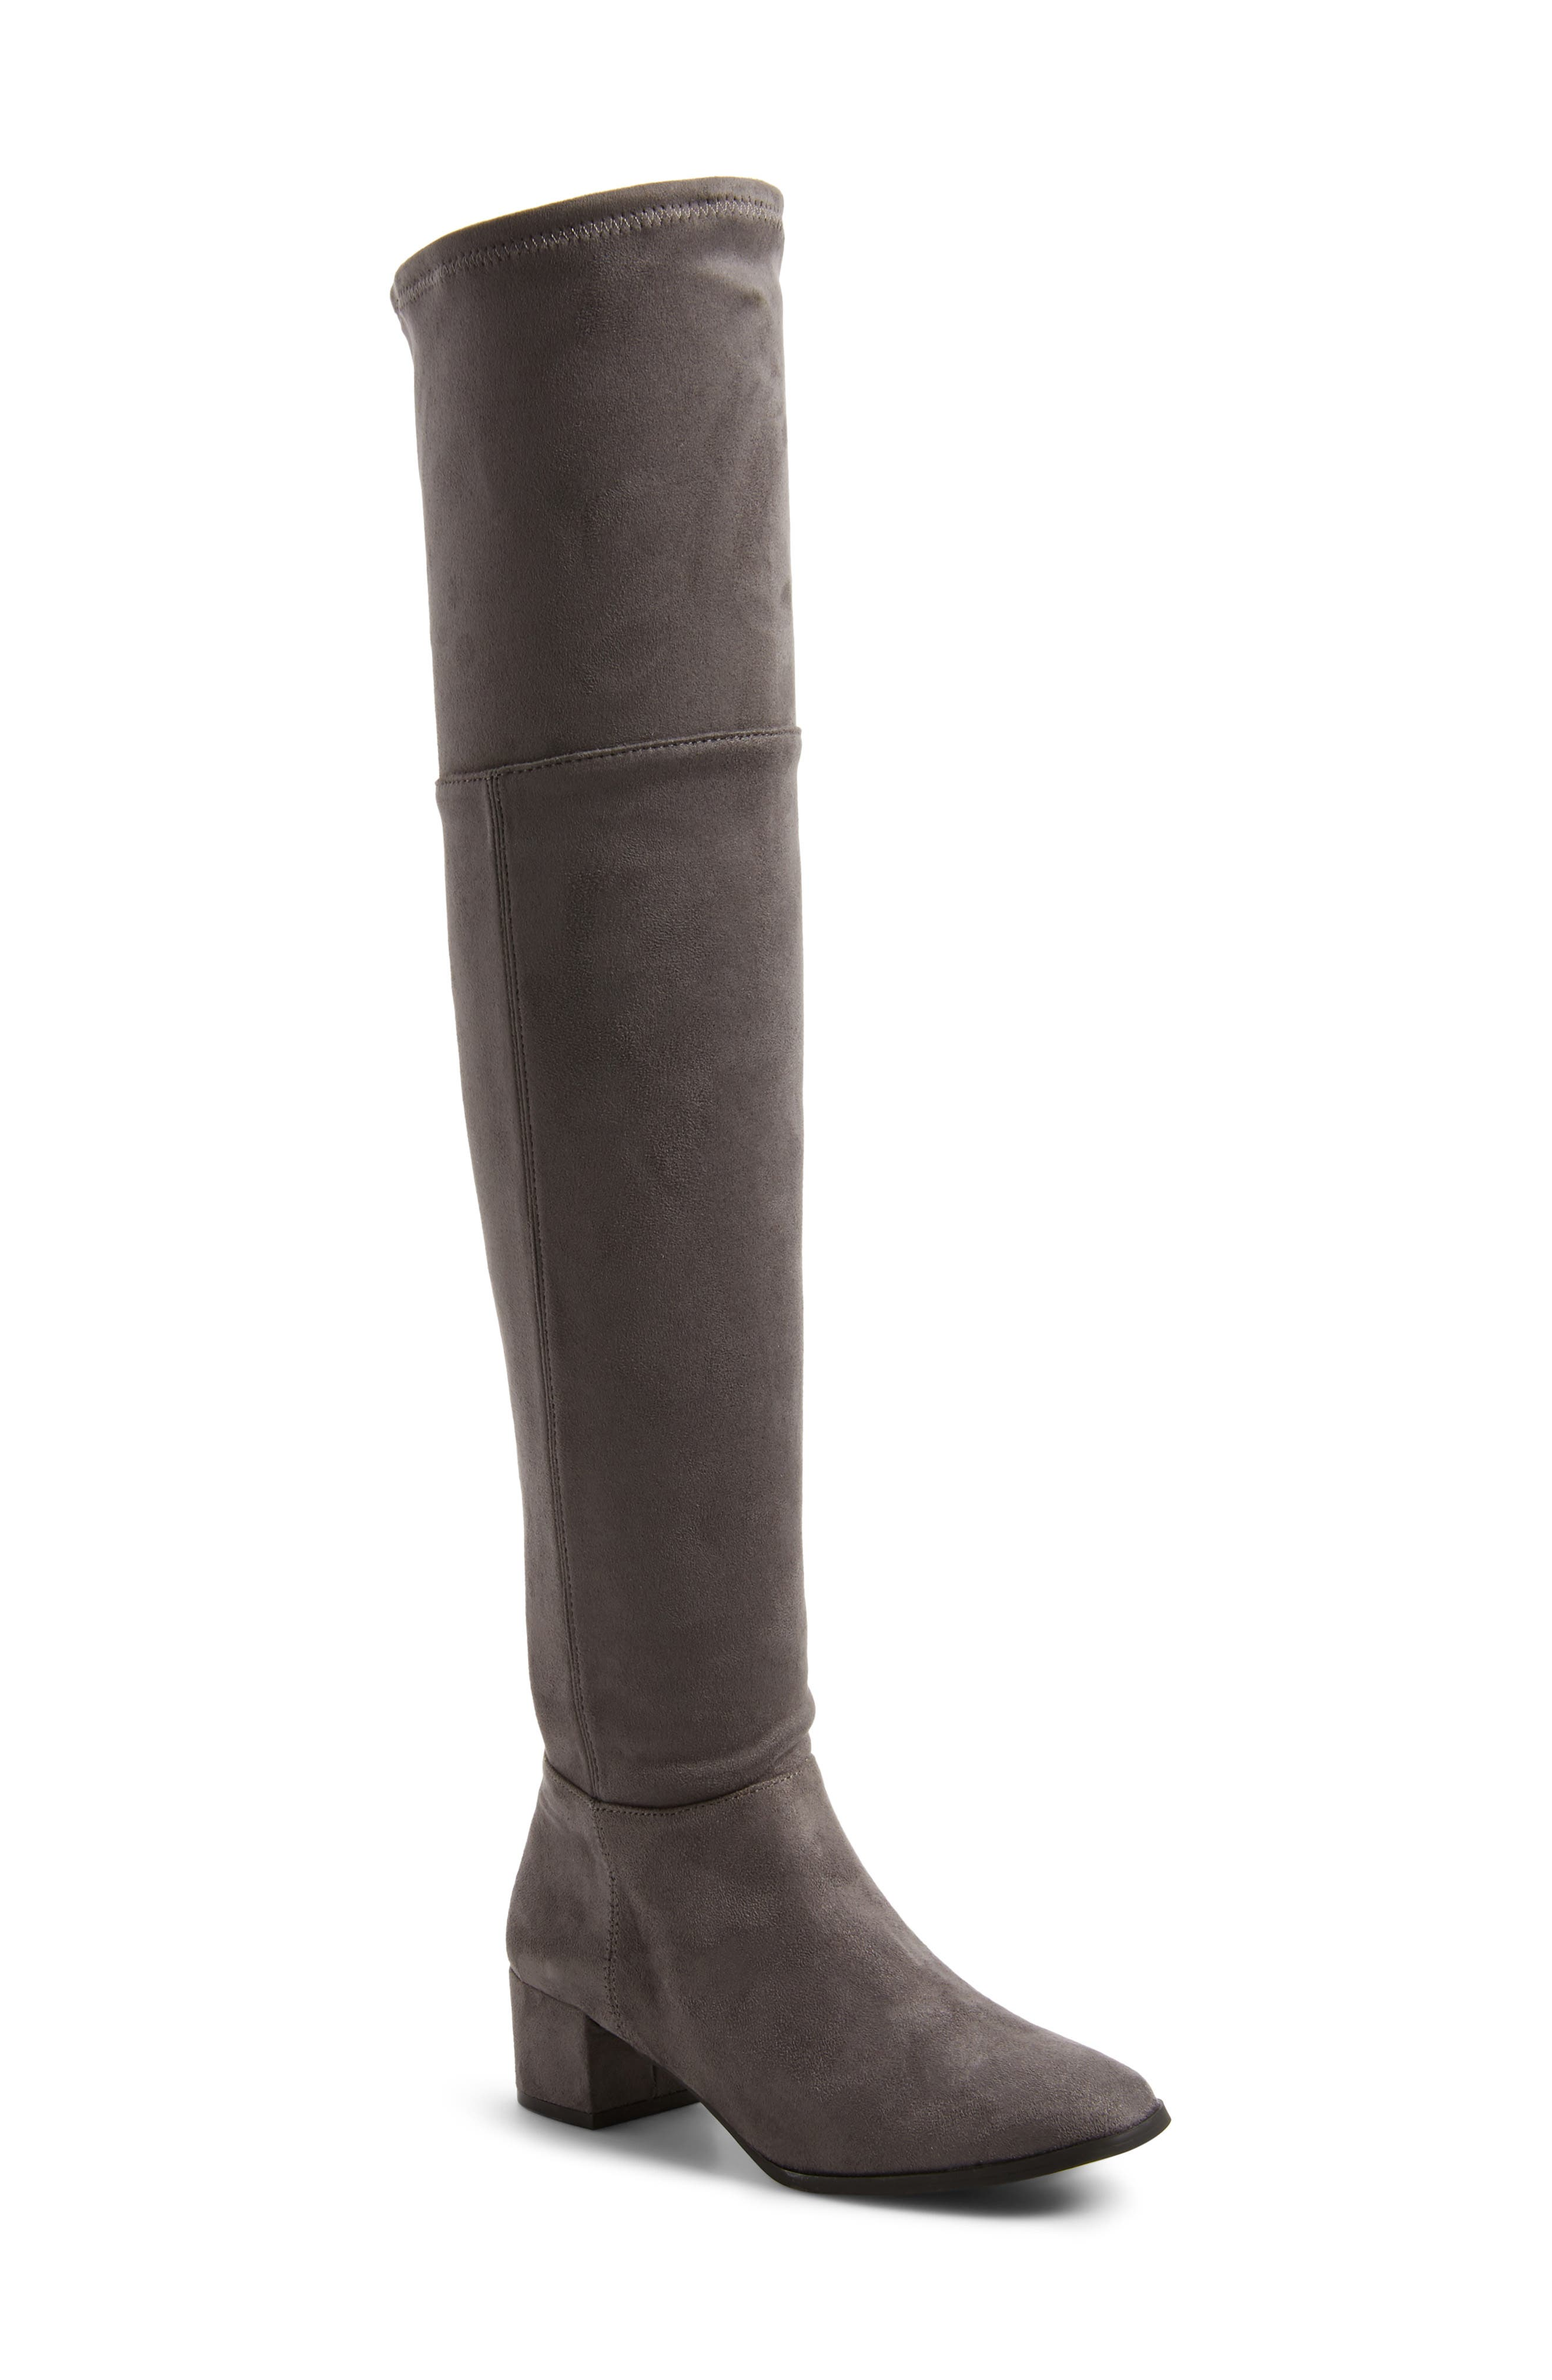 Festive Over the Knee Boot,                             Main thumbnail 1, color,                             Mink